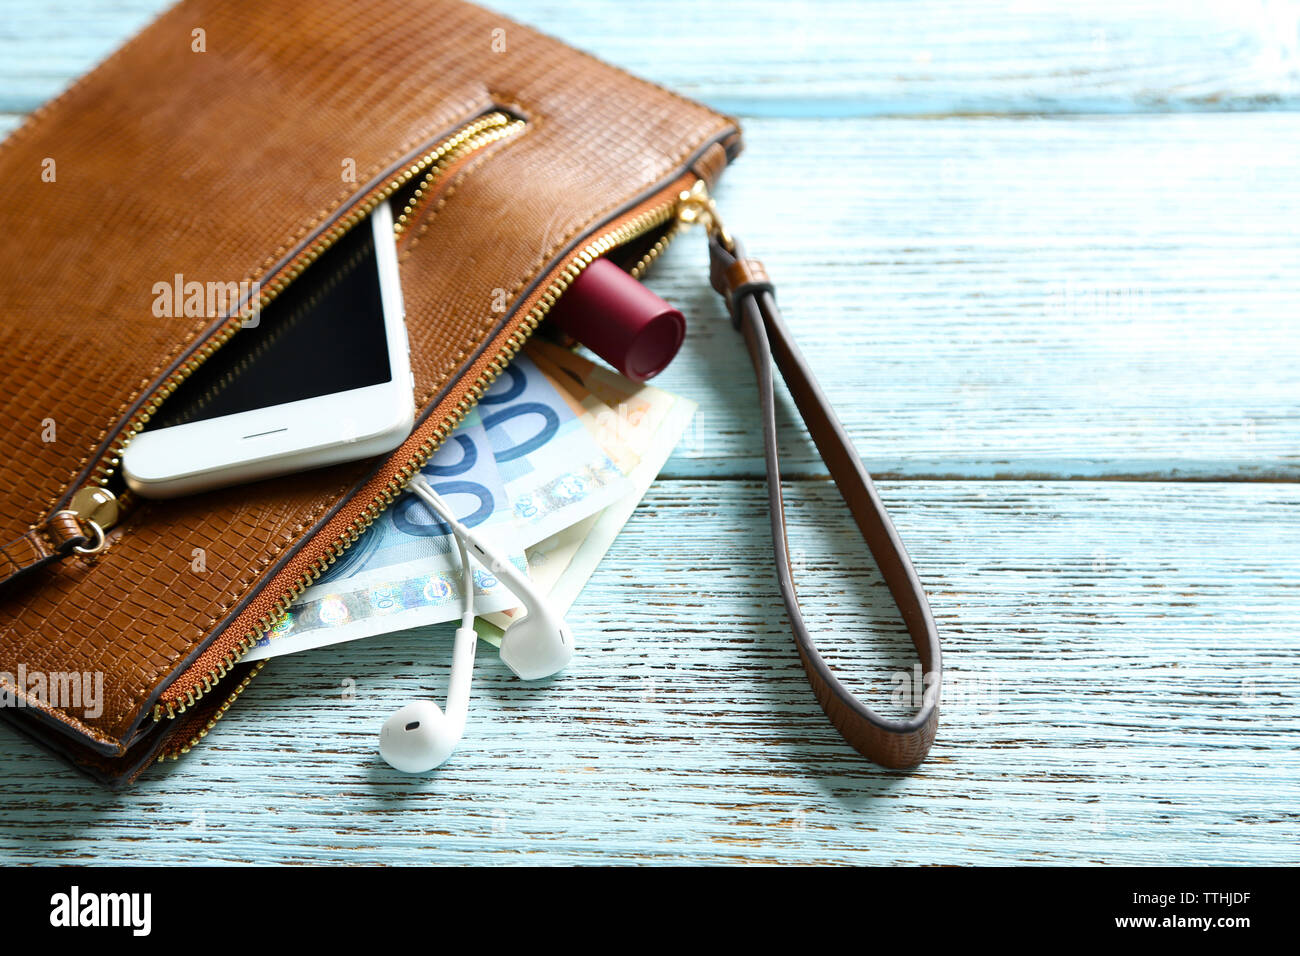 Leather purse with mobile phone and euro banknotes on wooden background - Stock Image